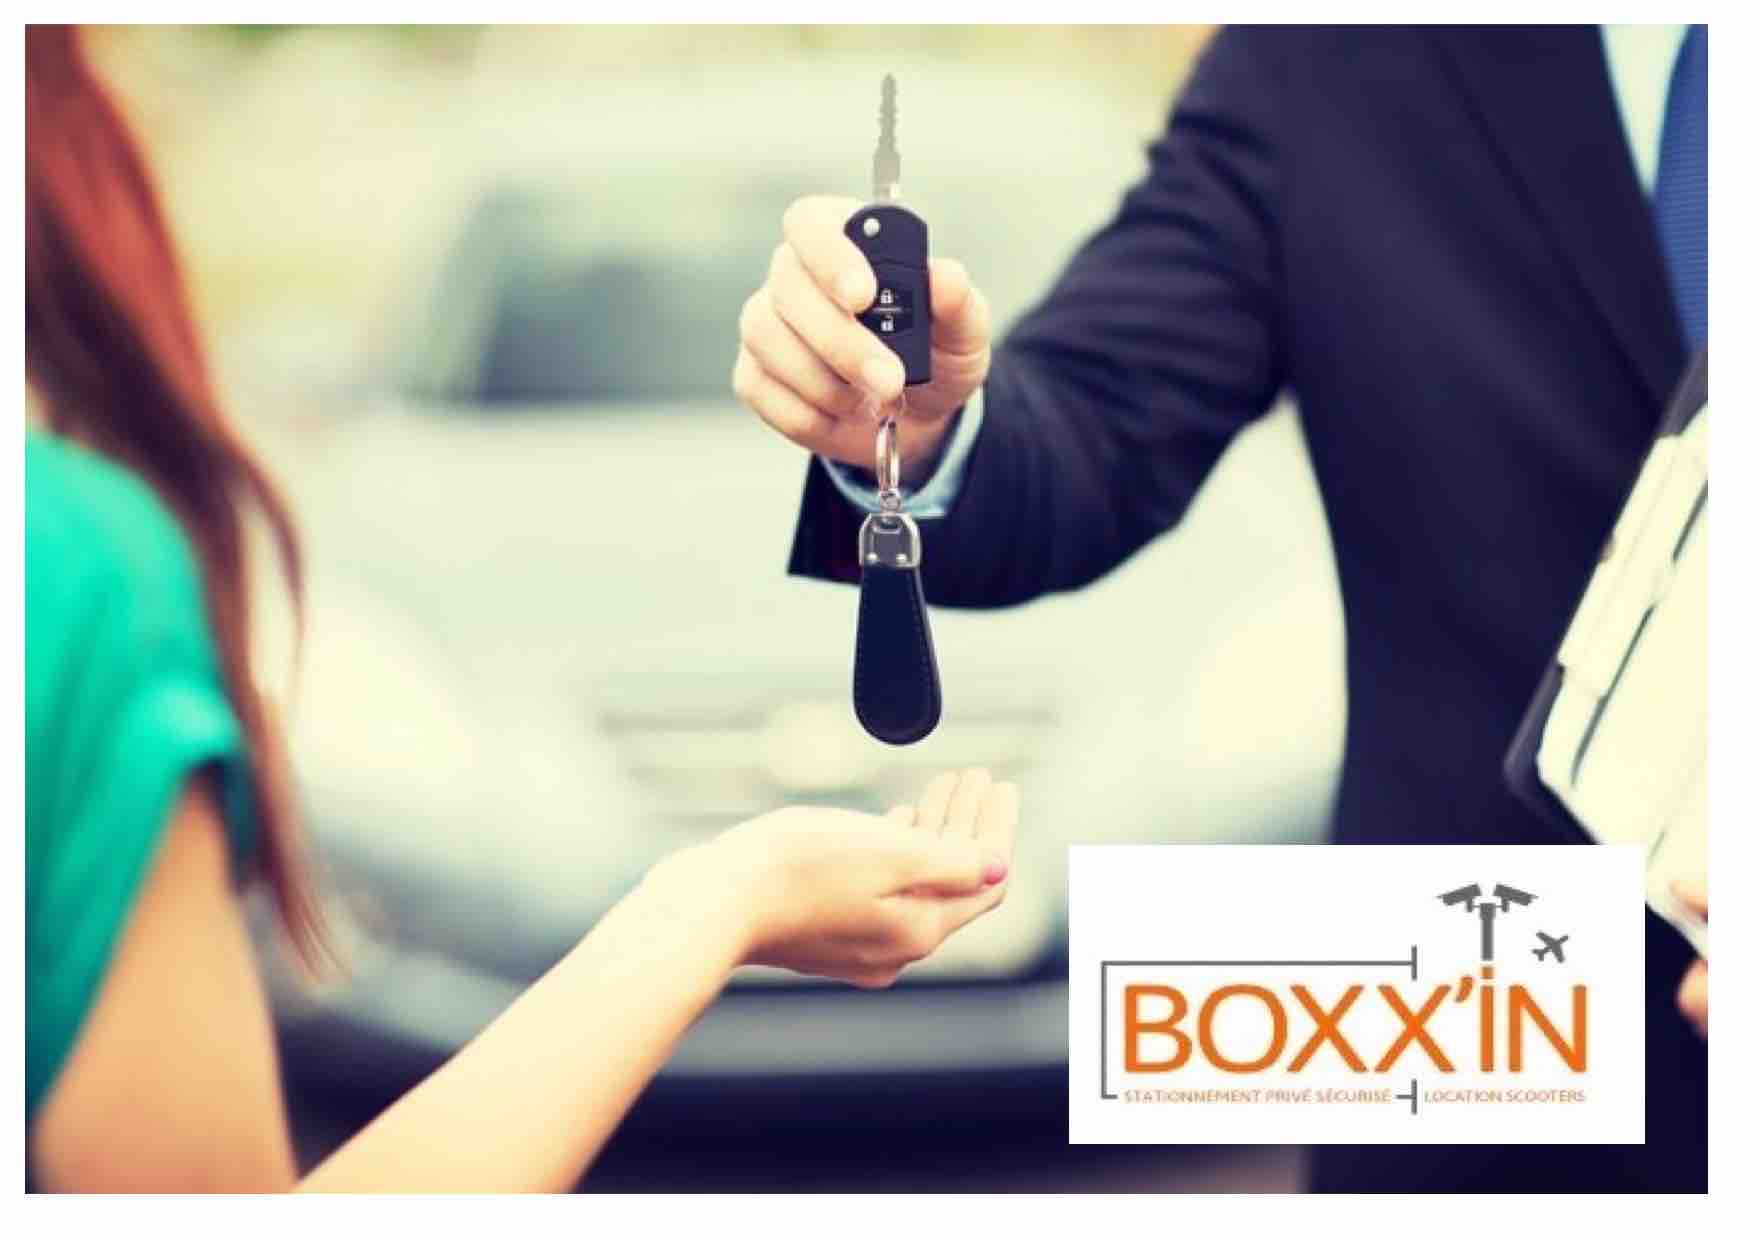 Boxx'in Aéroport Toulouse - valet